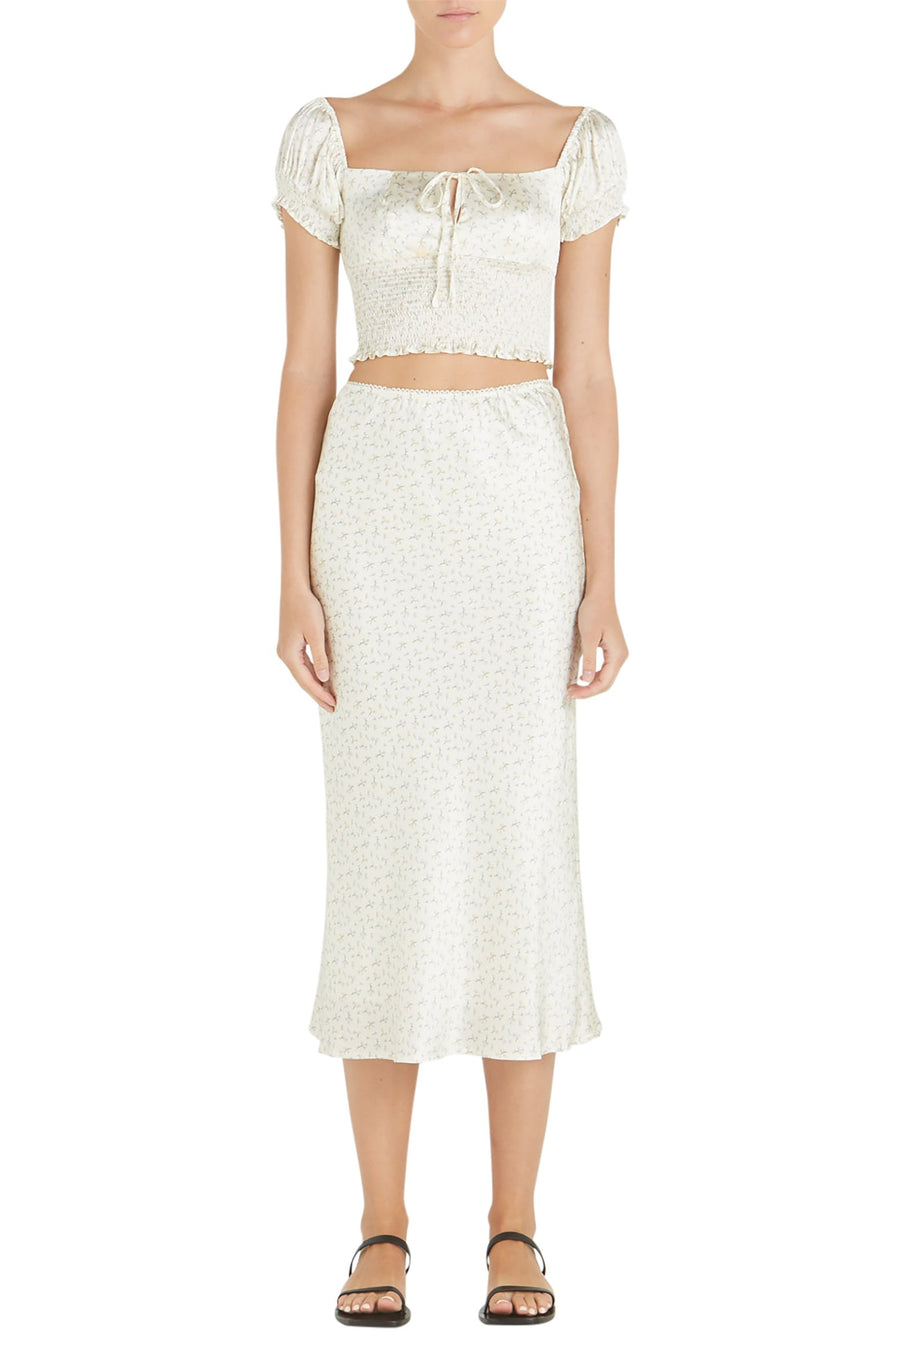 Hansen & Gretel Opal Silk Midi Skirt in Fiore Cream Floral Print from The New Trend